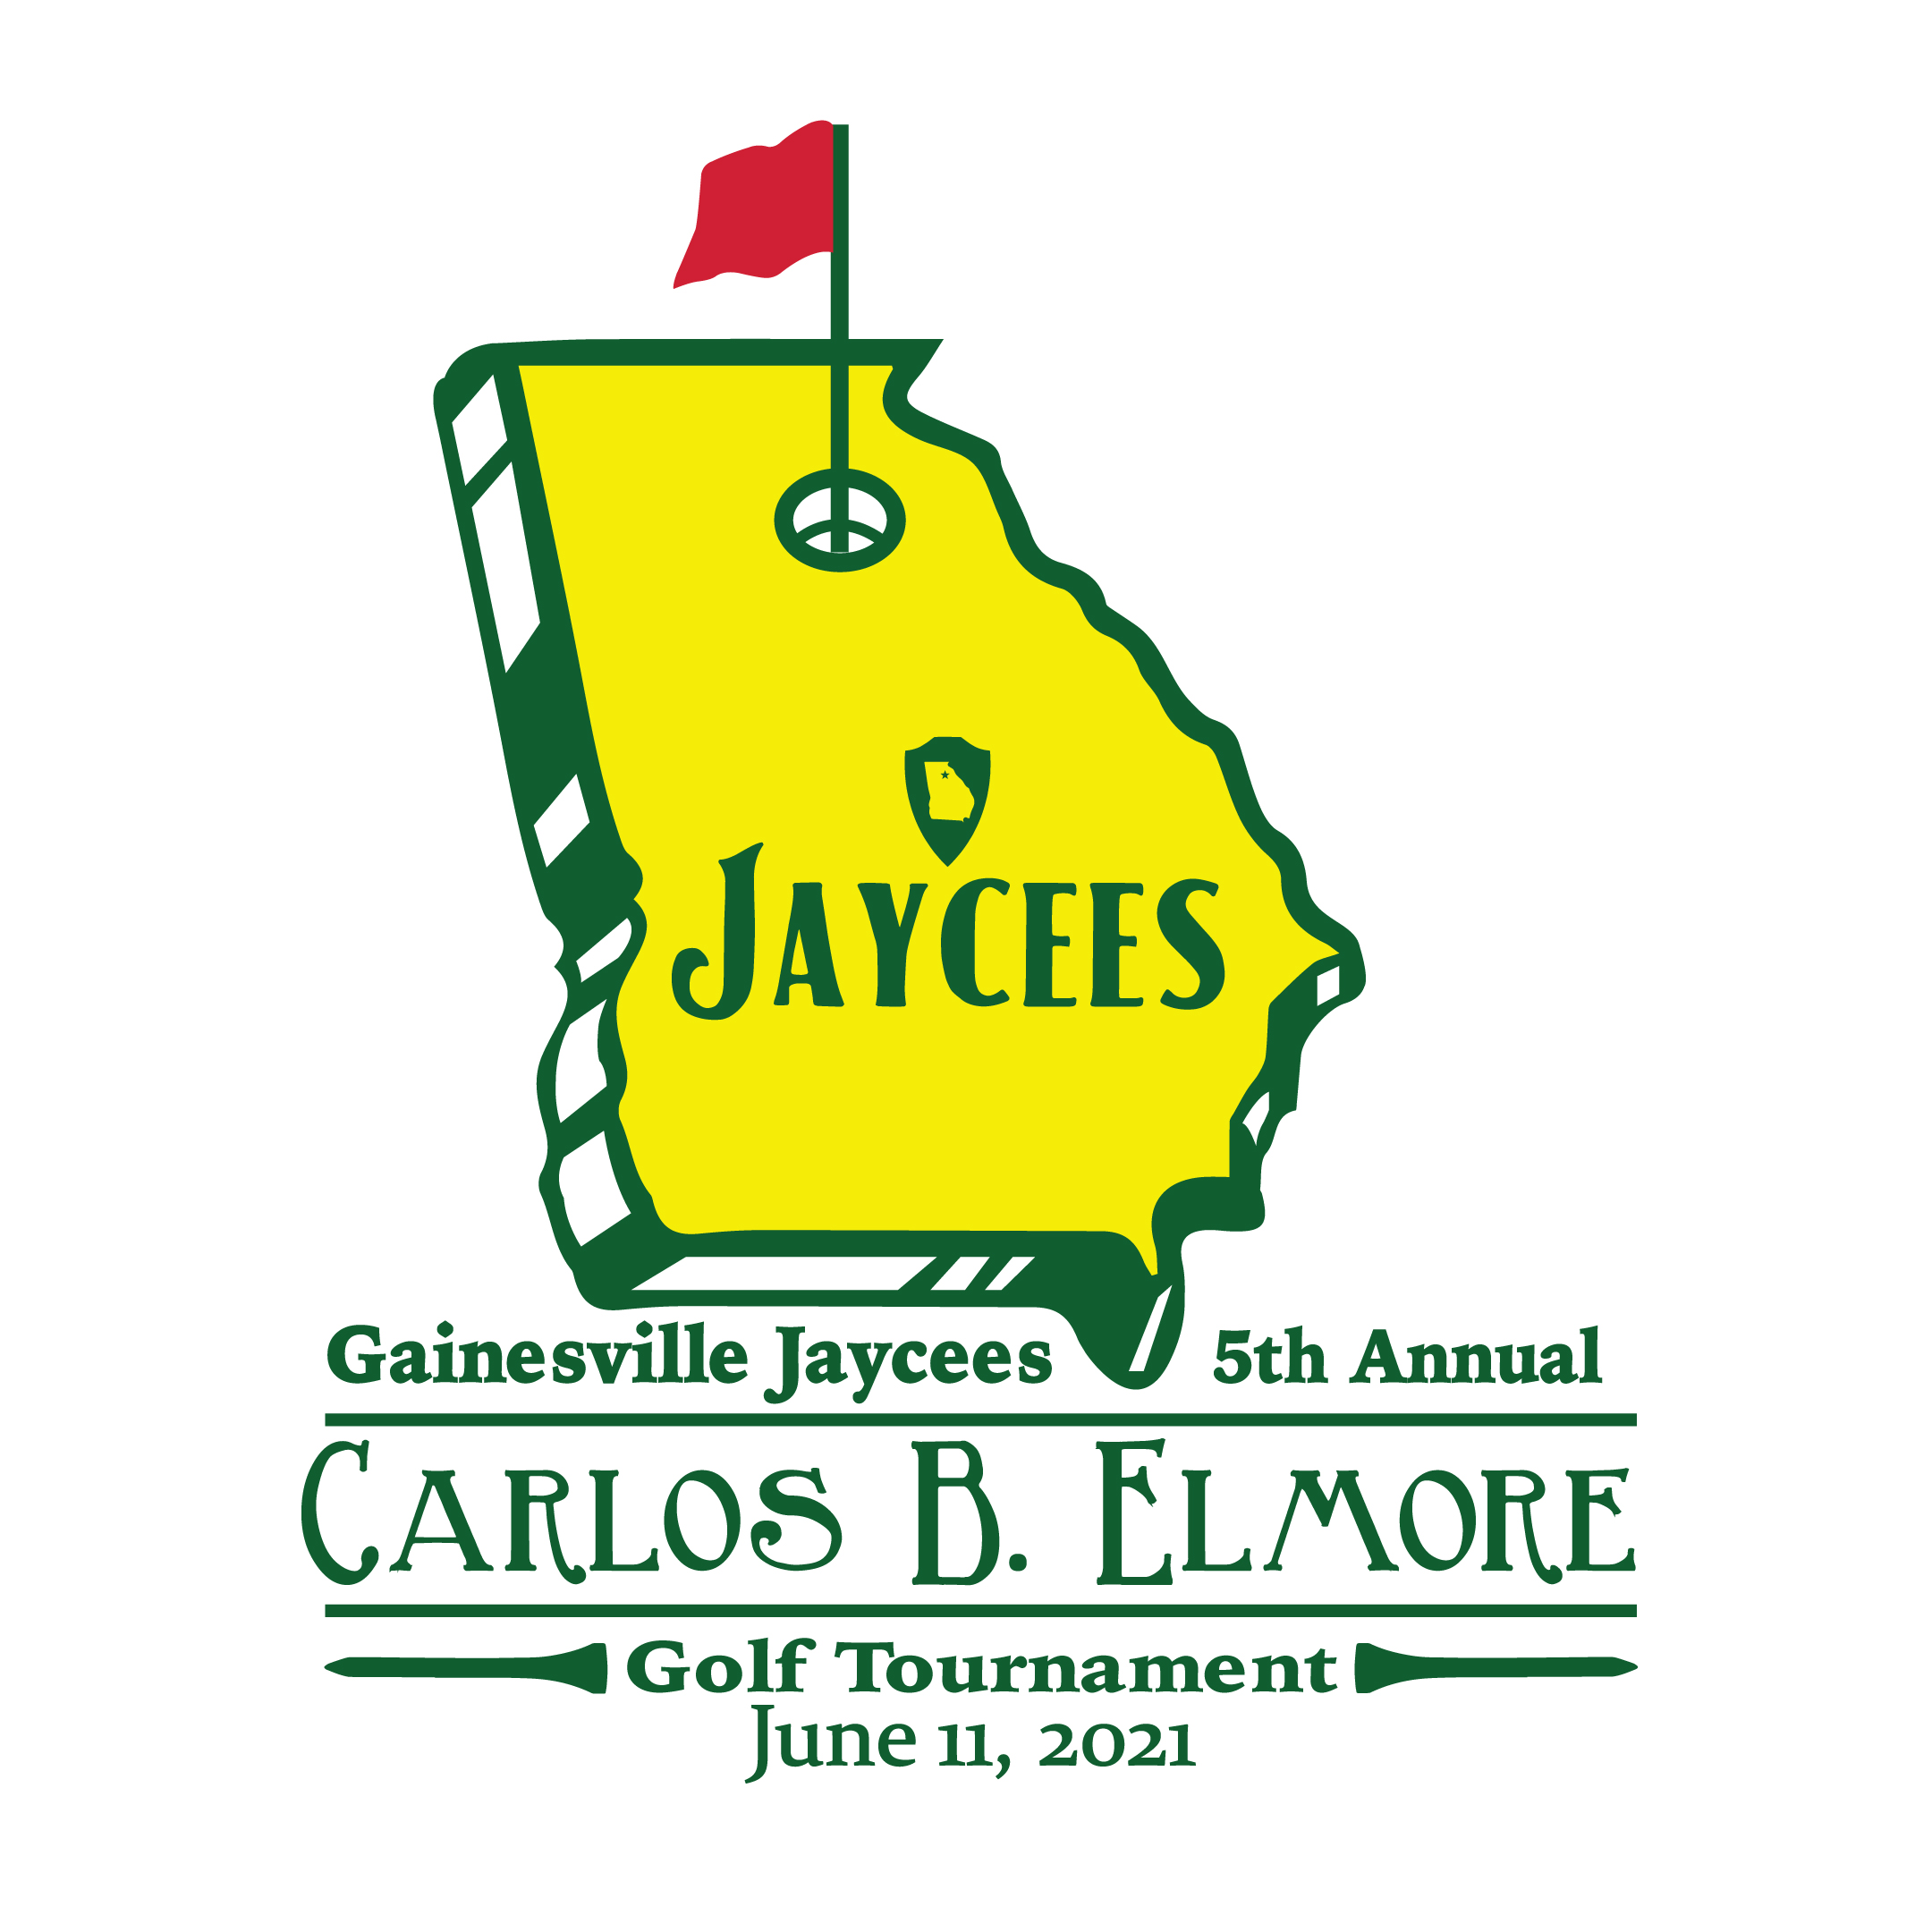 5th Annual Carlos B. Elmore Golf Tournament logo